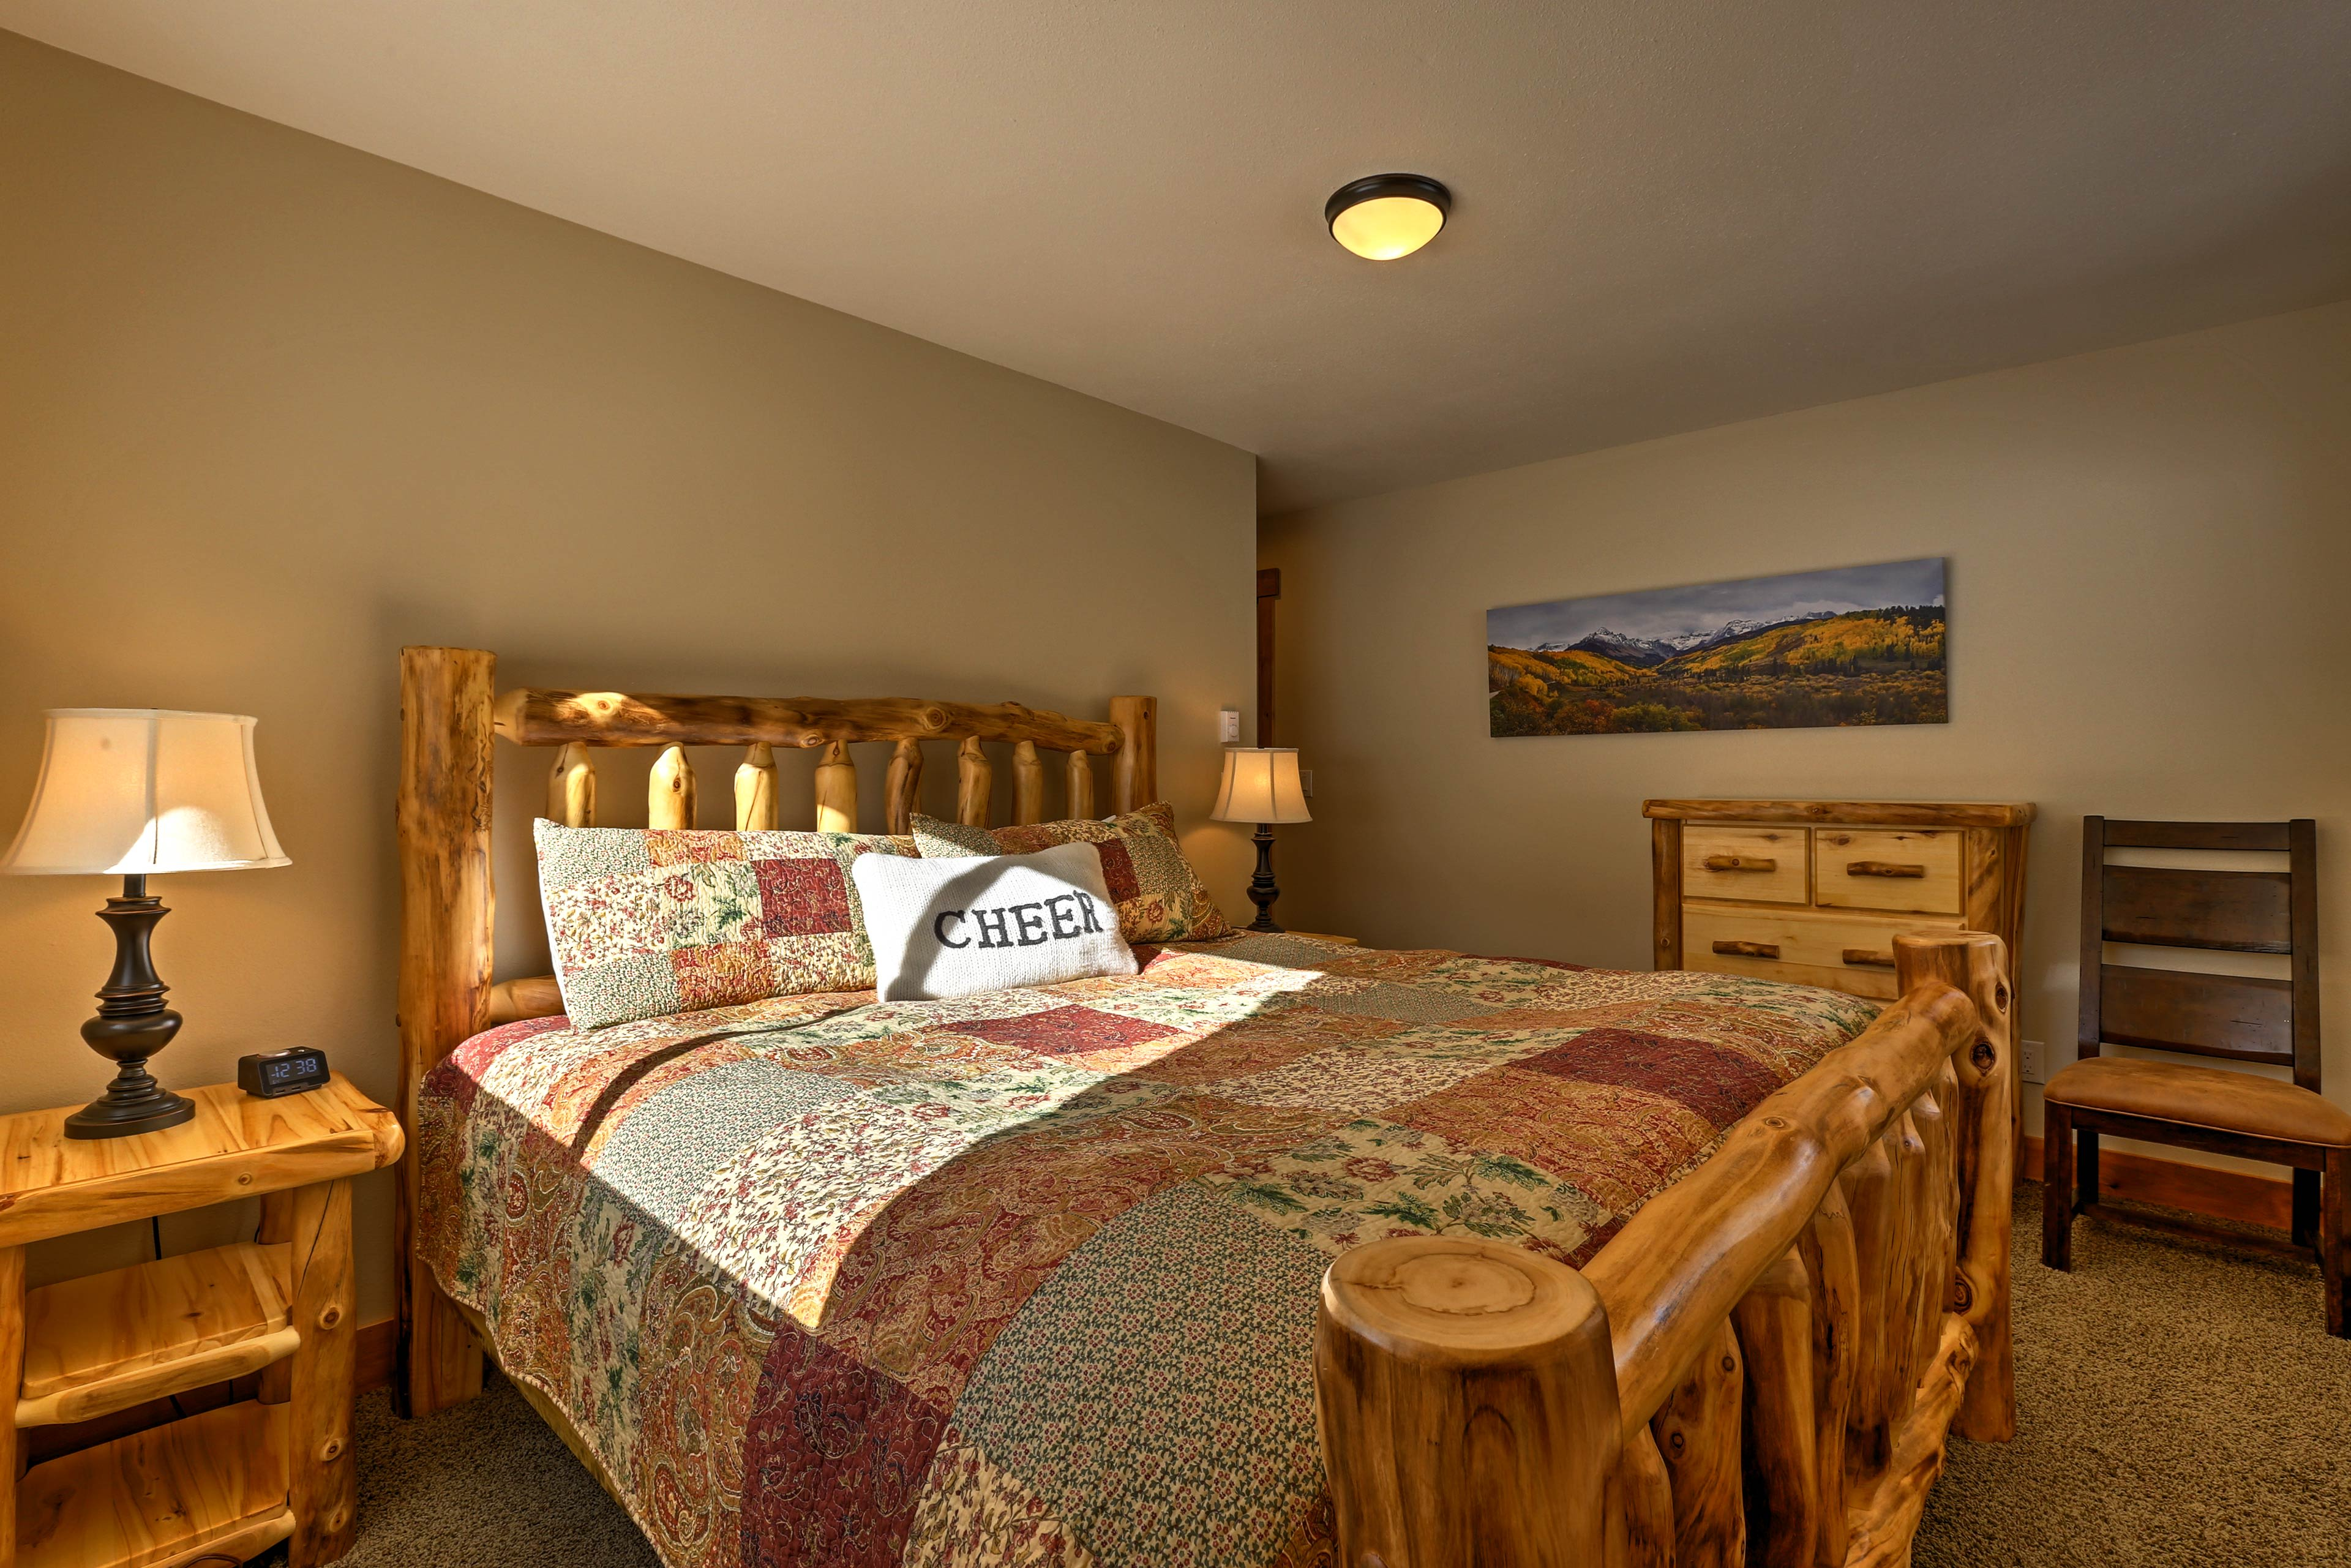 The second bedroom features a king bed as well.